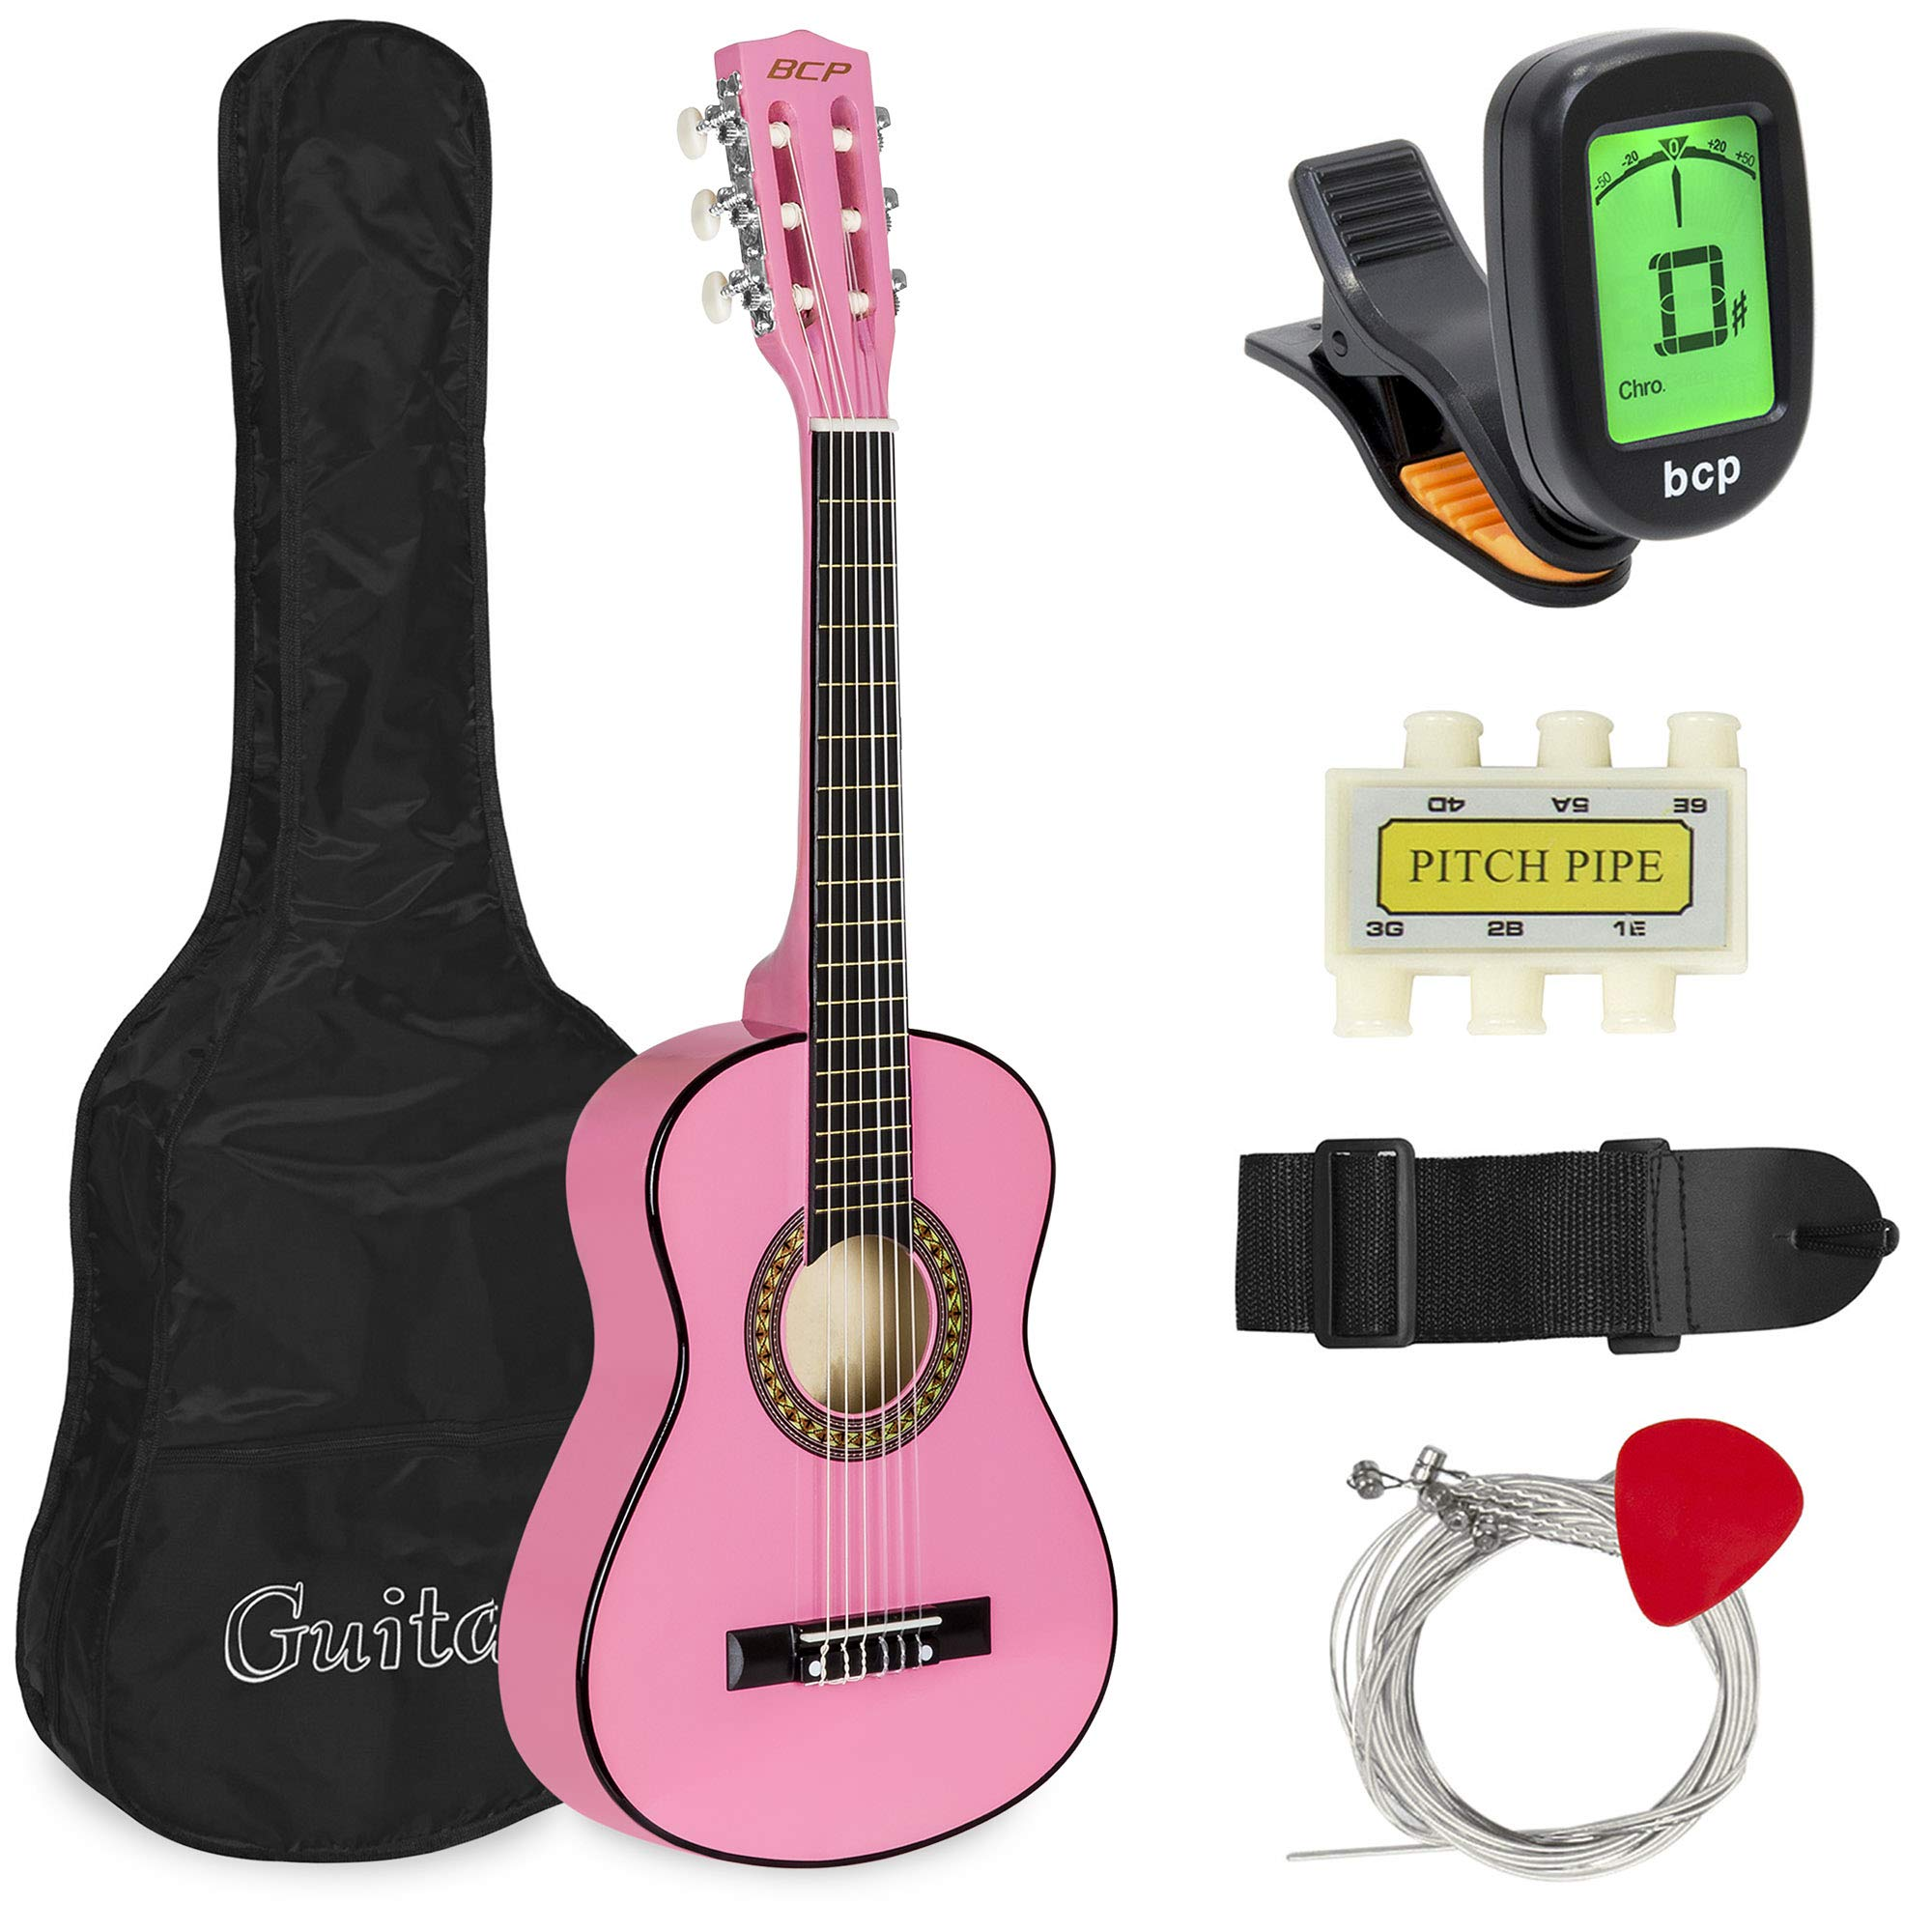 Best Choice Products 30in Kids Classical Acoustic Guitar Complete Beginners Kit with Carrying Bag, Picks, E-Tuner, Strap (Pink) by Best Choice Products